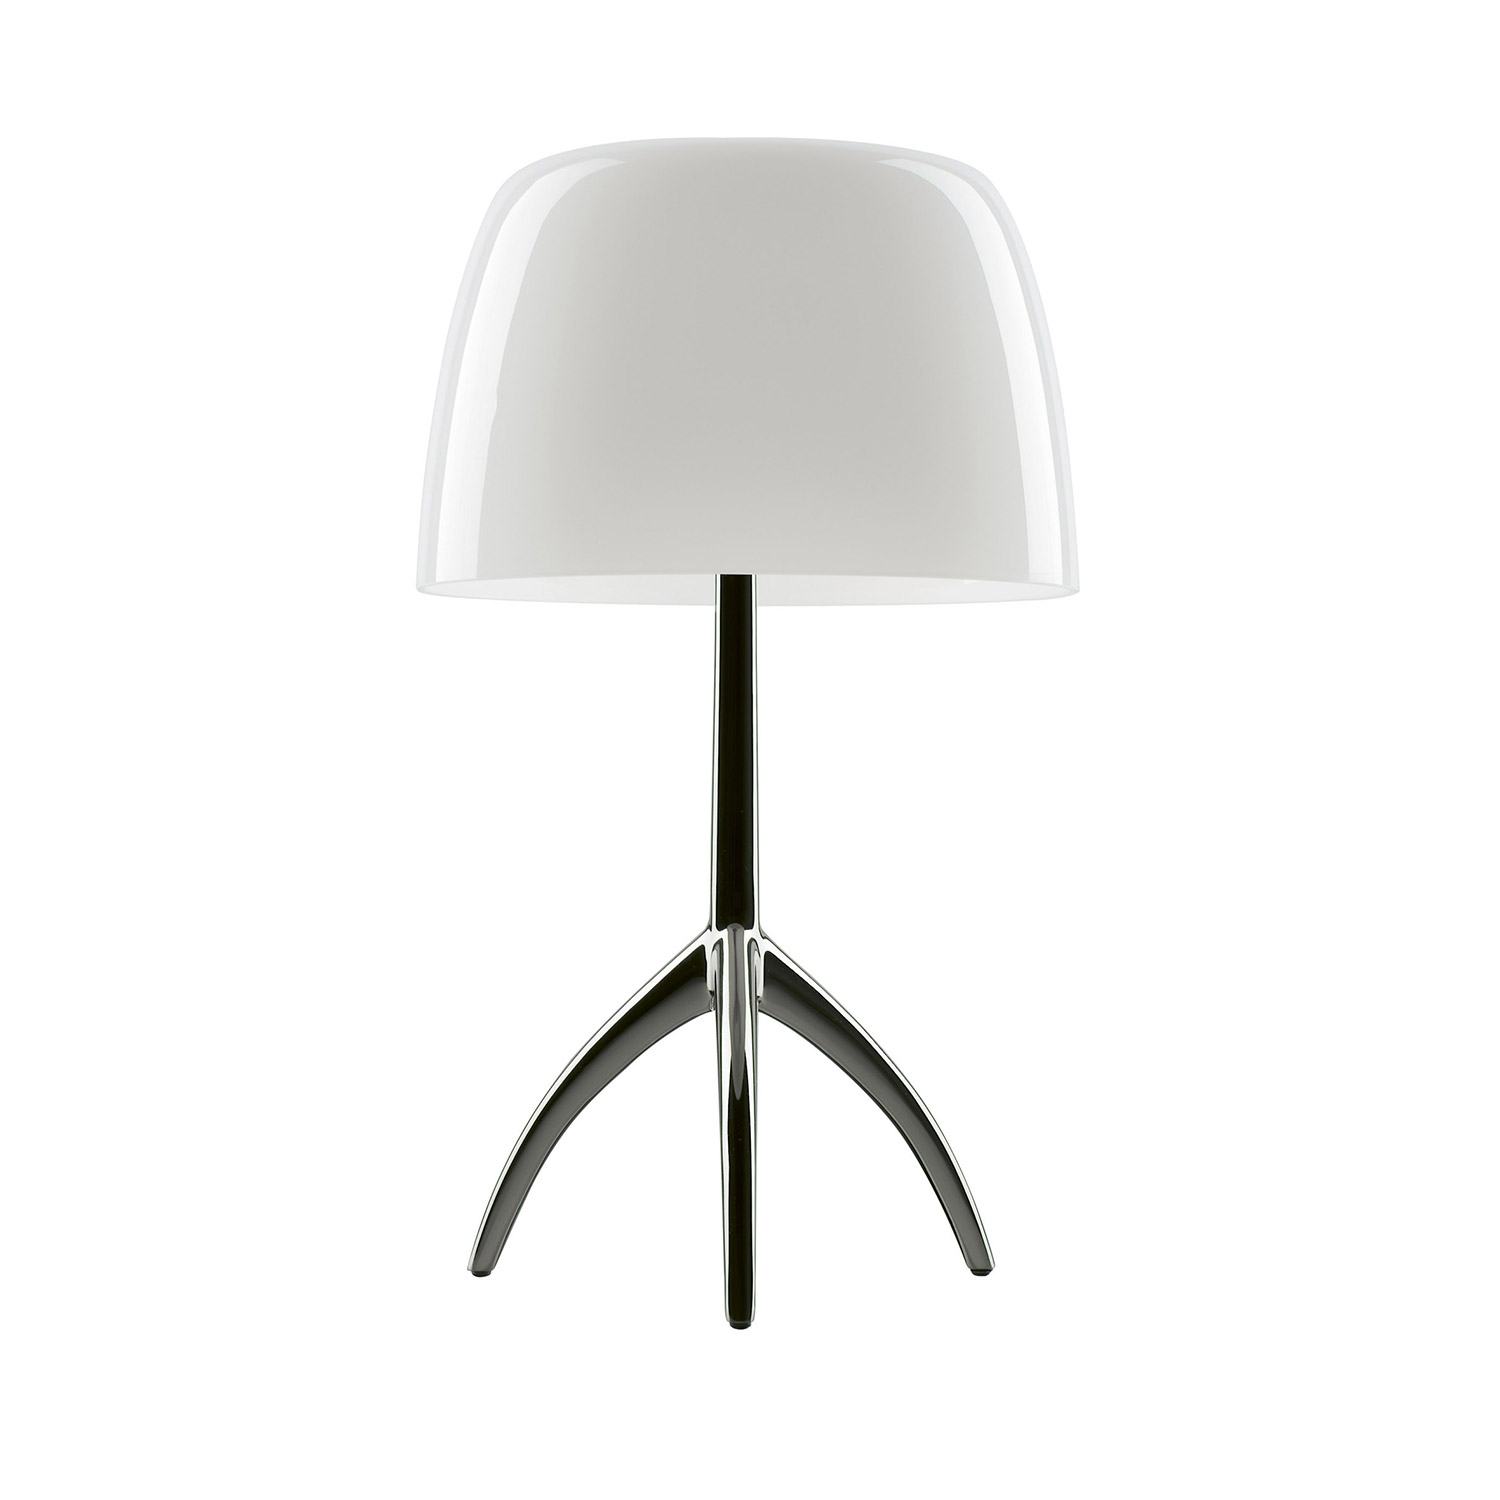 Lumiere 05 bordslampa S, vit